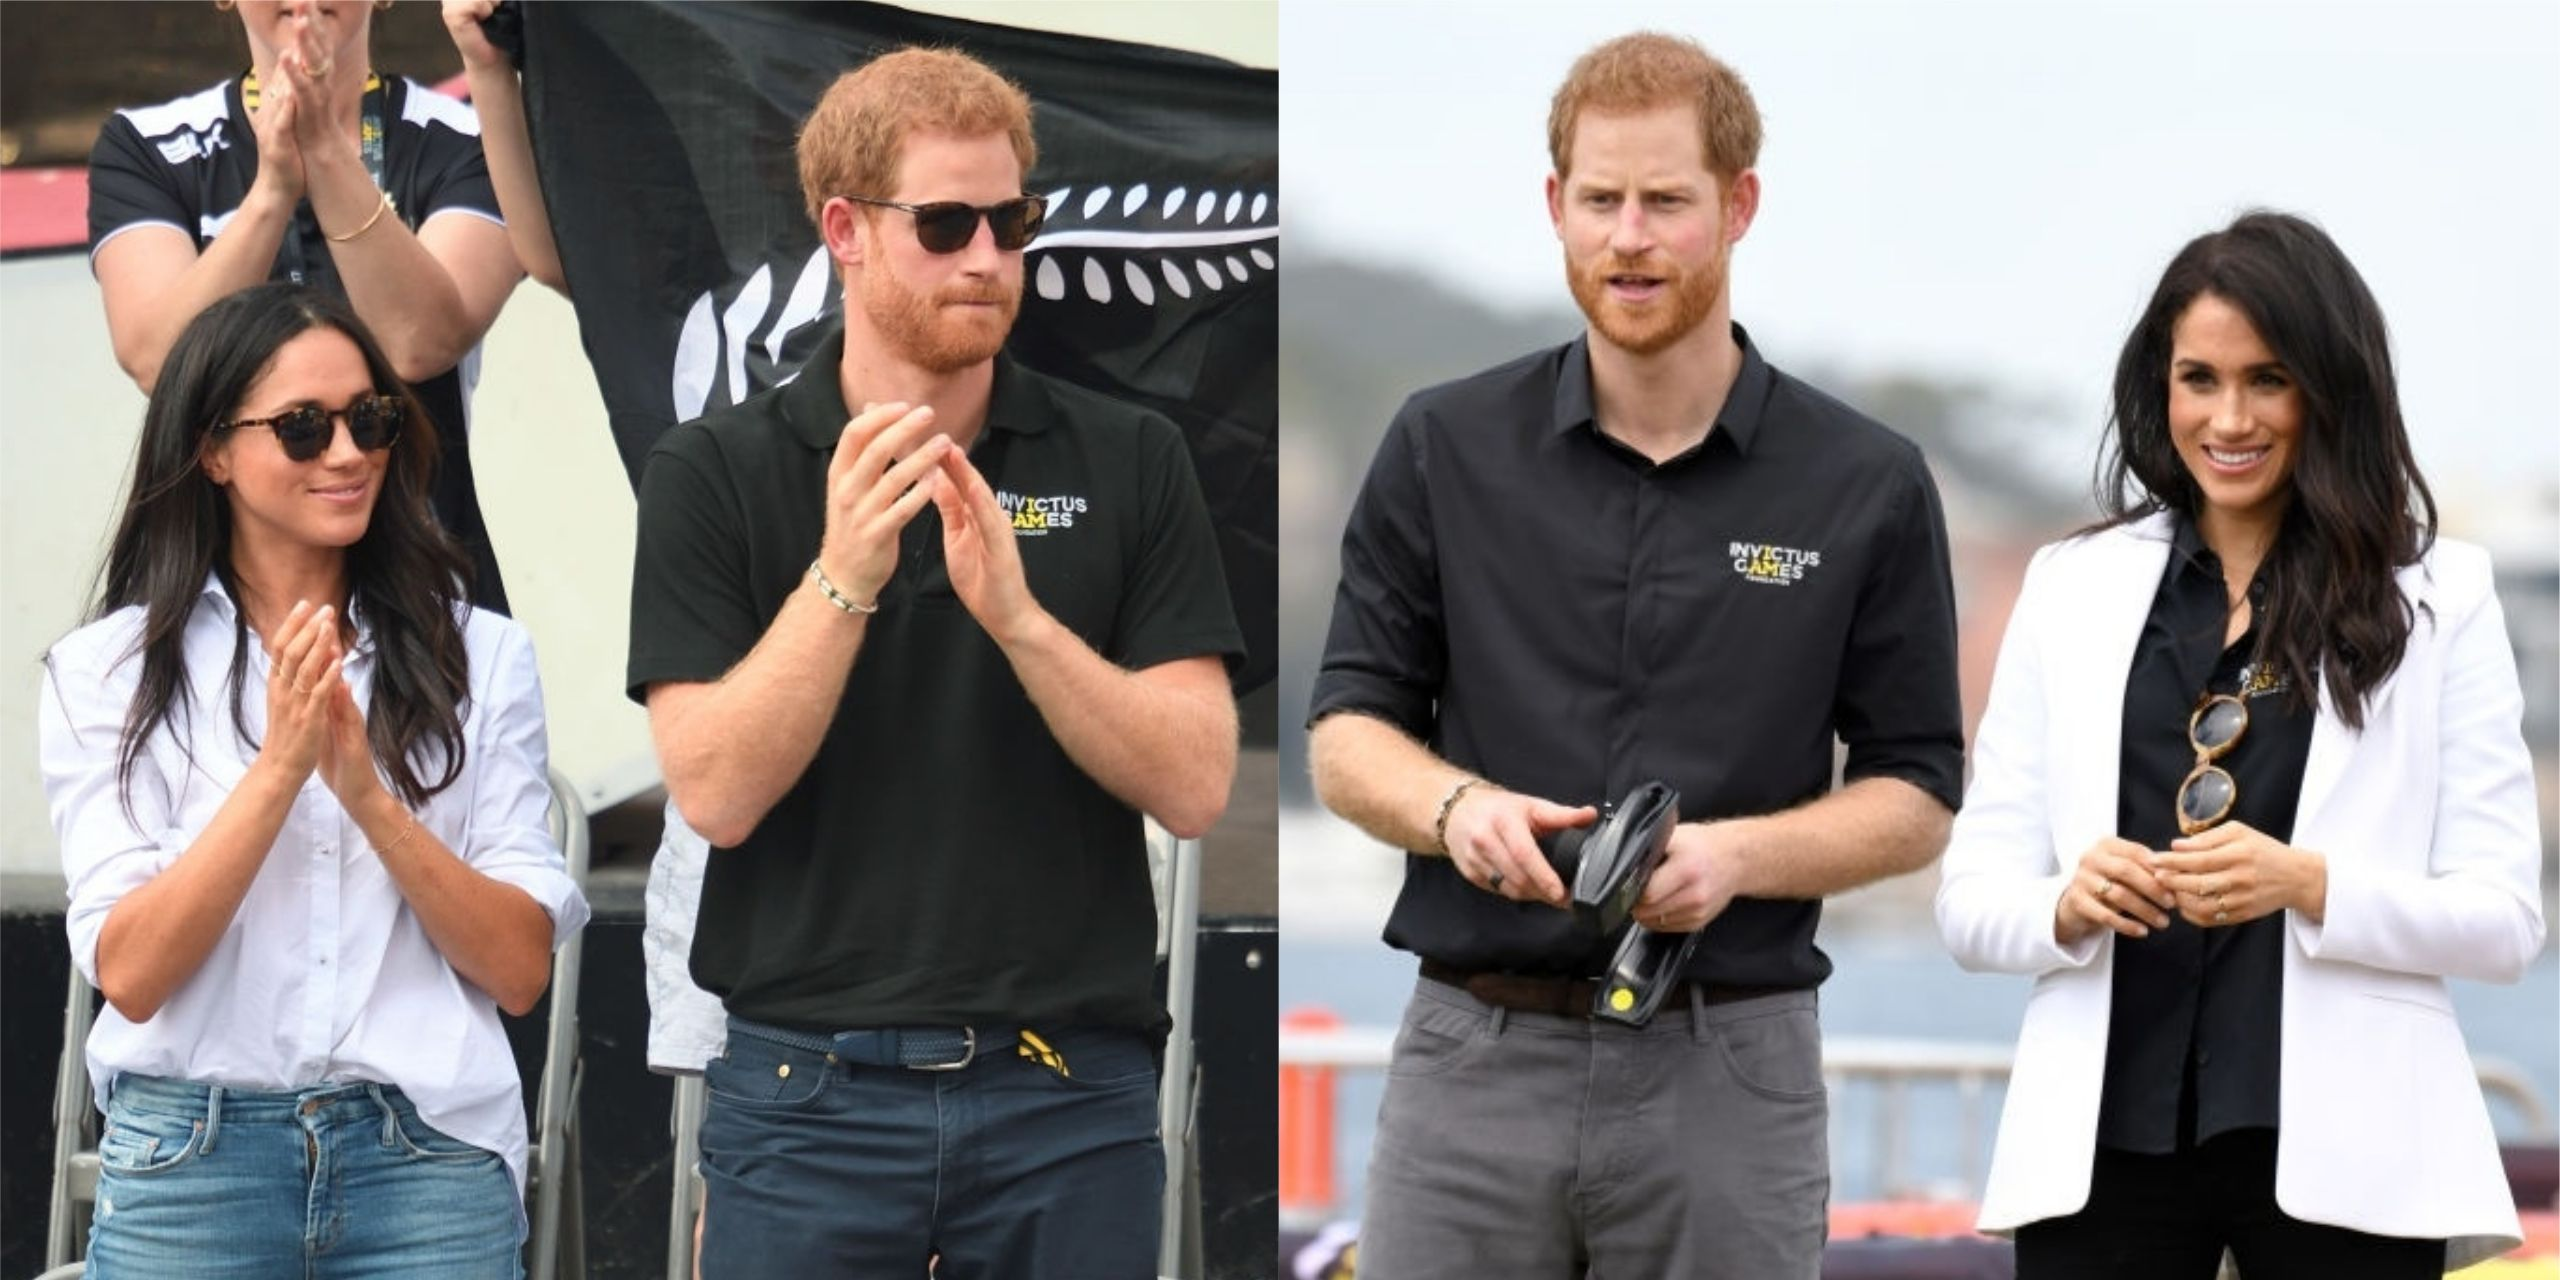 Duke and Duchess of Sussex attend Invictus Games 2018 opening in Sydney